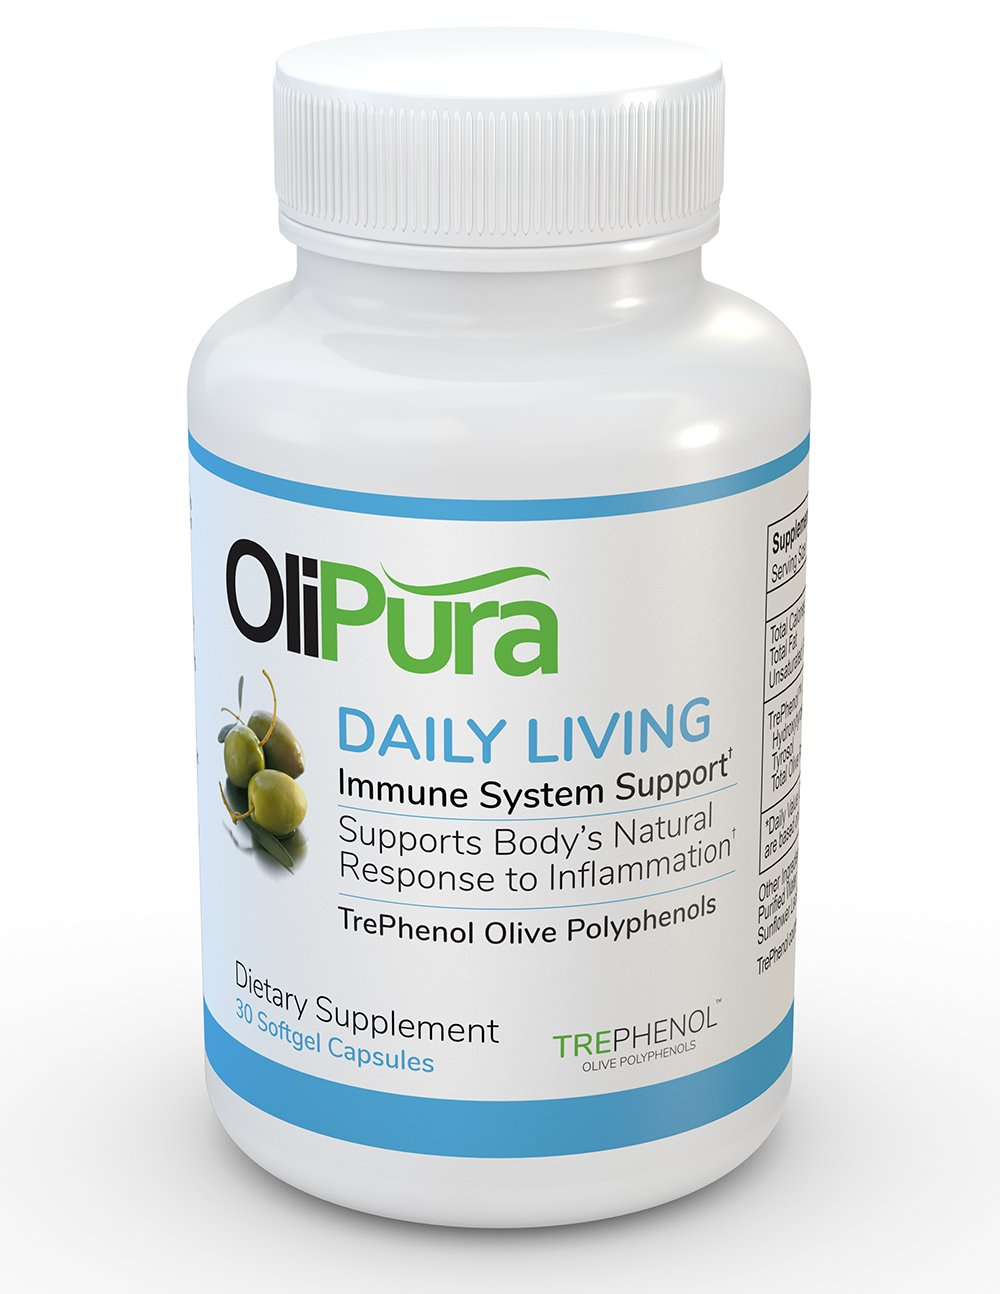 OliPura Daily Living - Olive Polyphenols to Support Body's Natural Response to Inflammation by OliPura by Oliventures